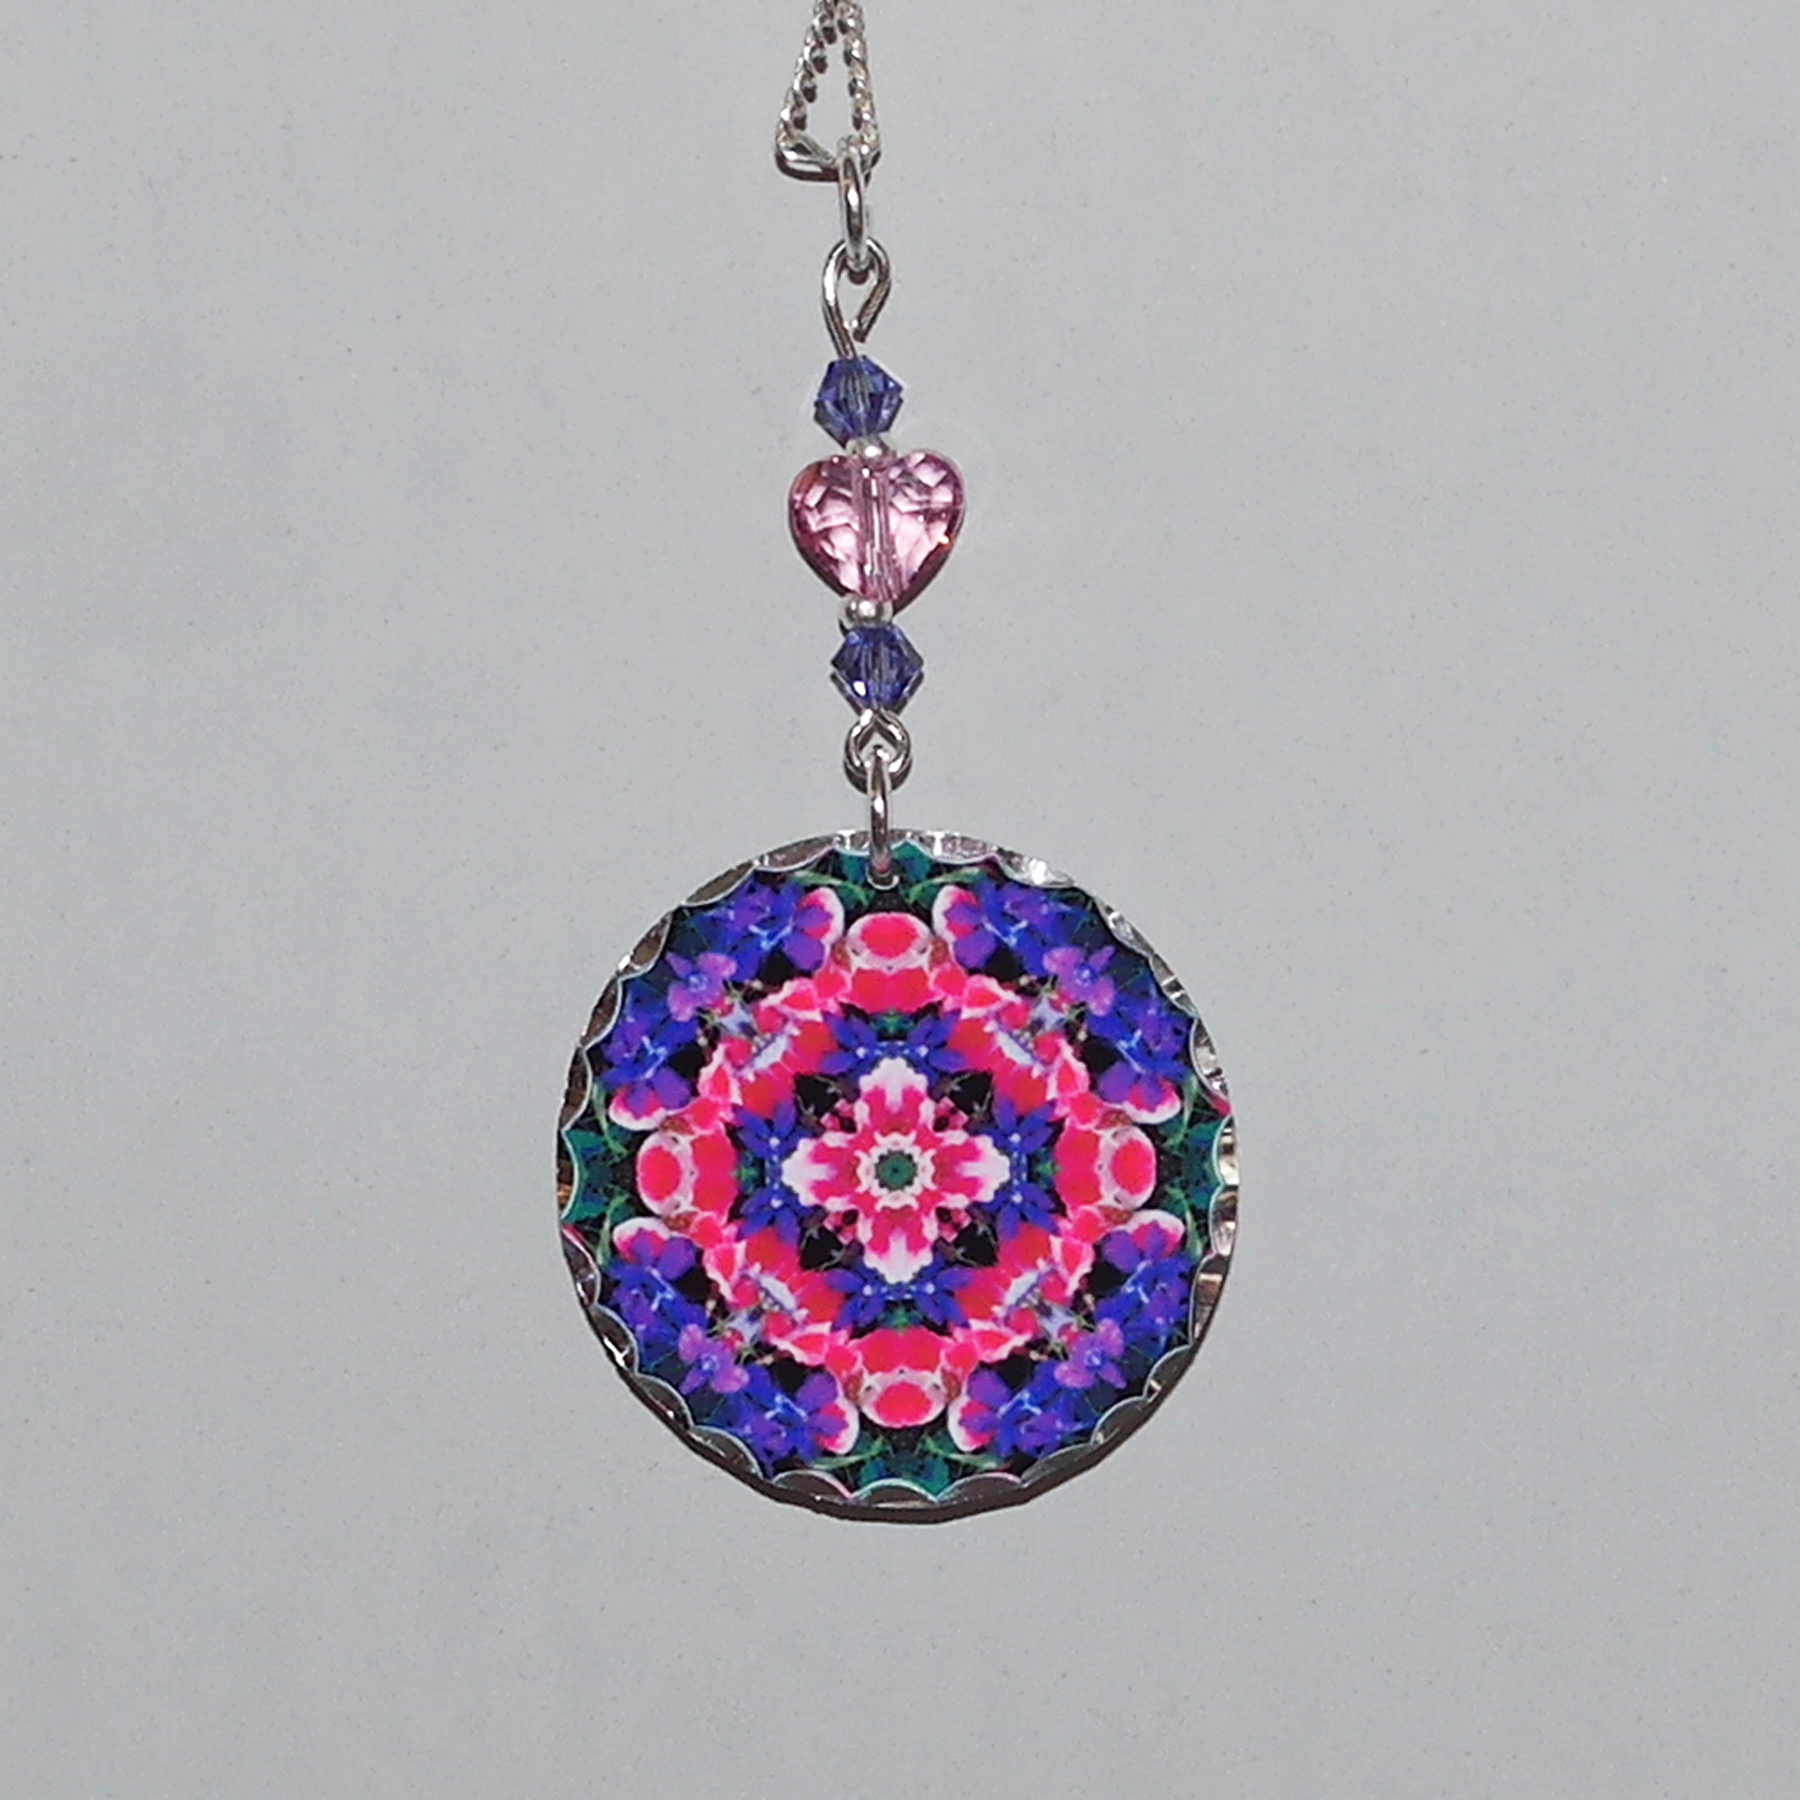 Wildflower Charm Necklace Silver Mandala Sacred Geometry Kaleidoscope Pink Providence